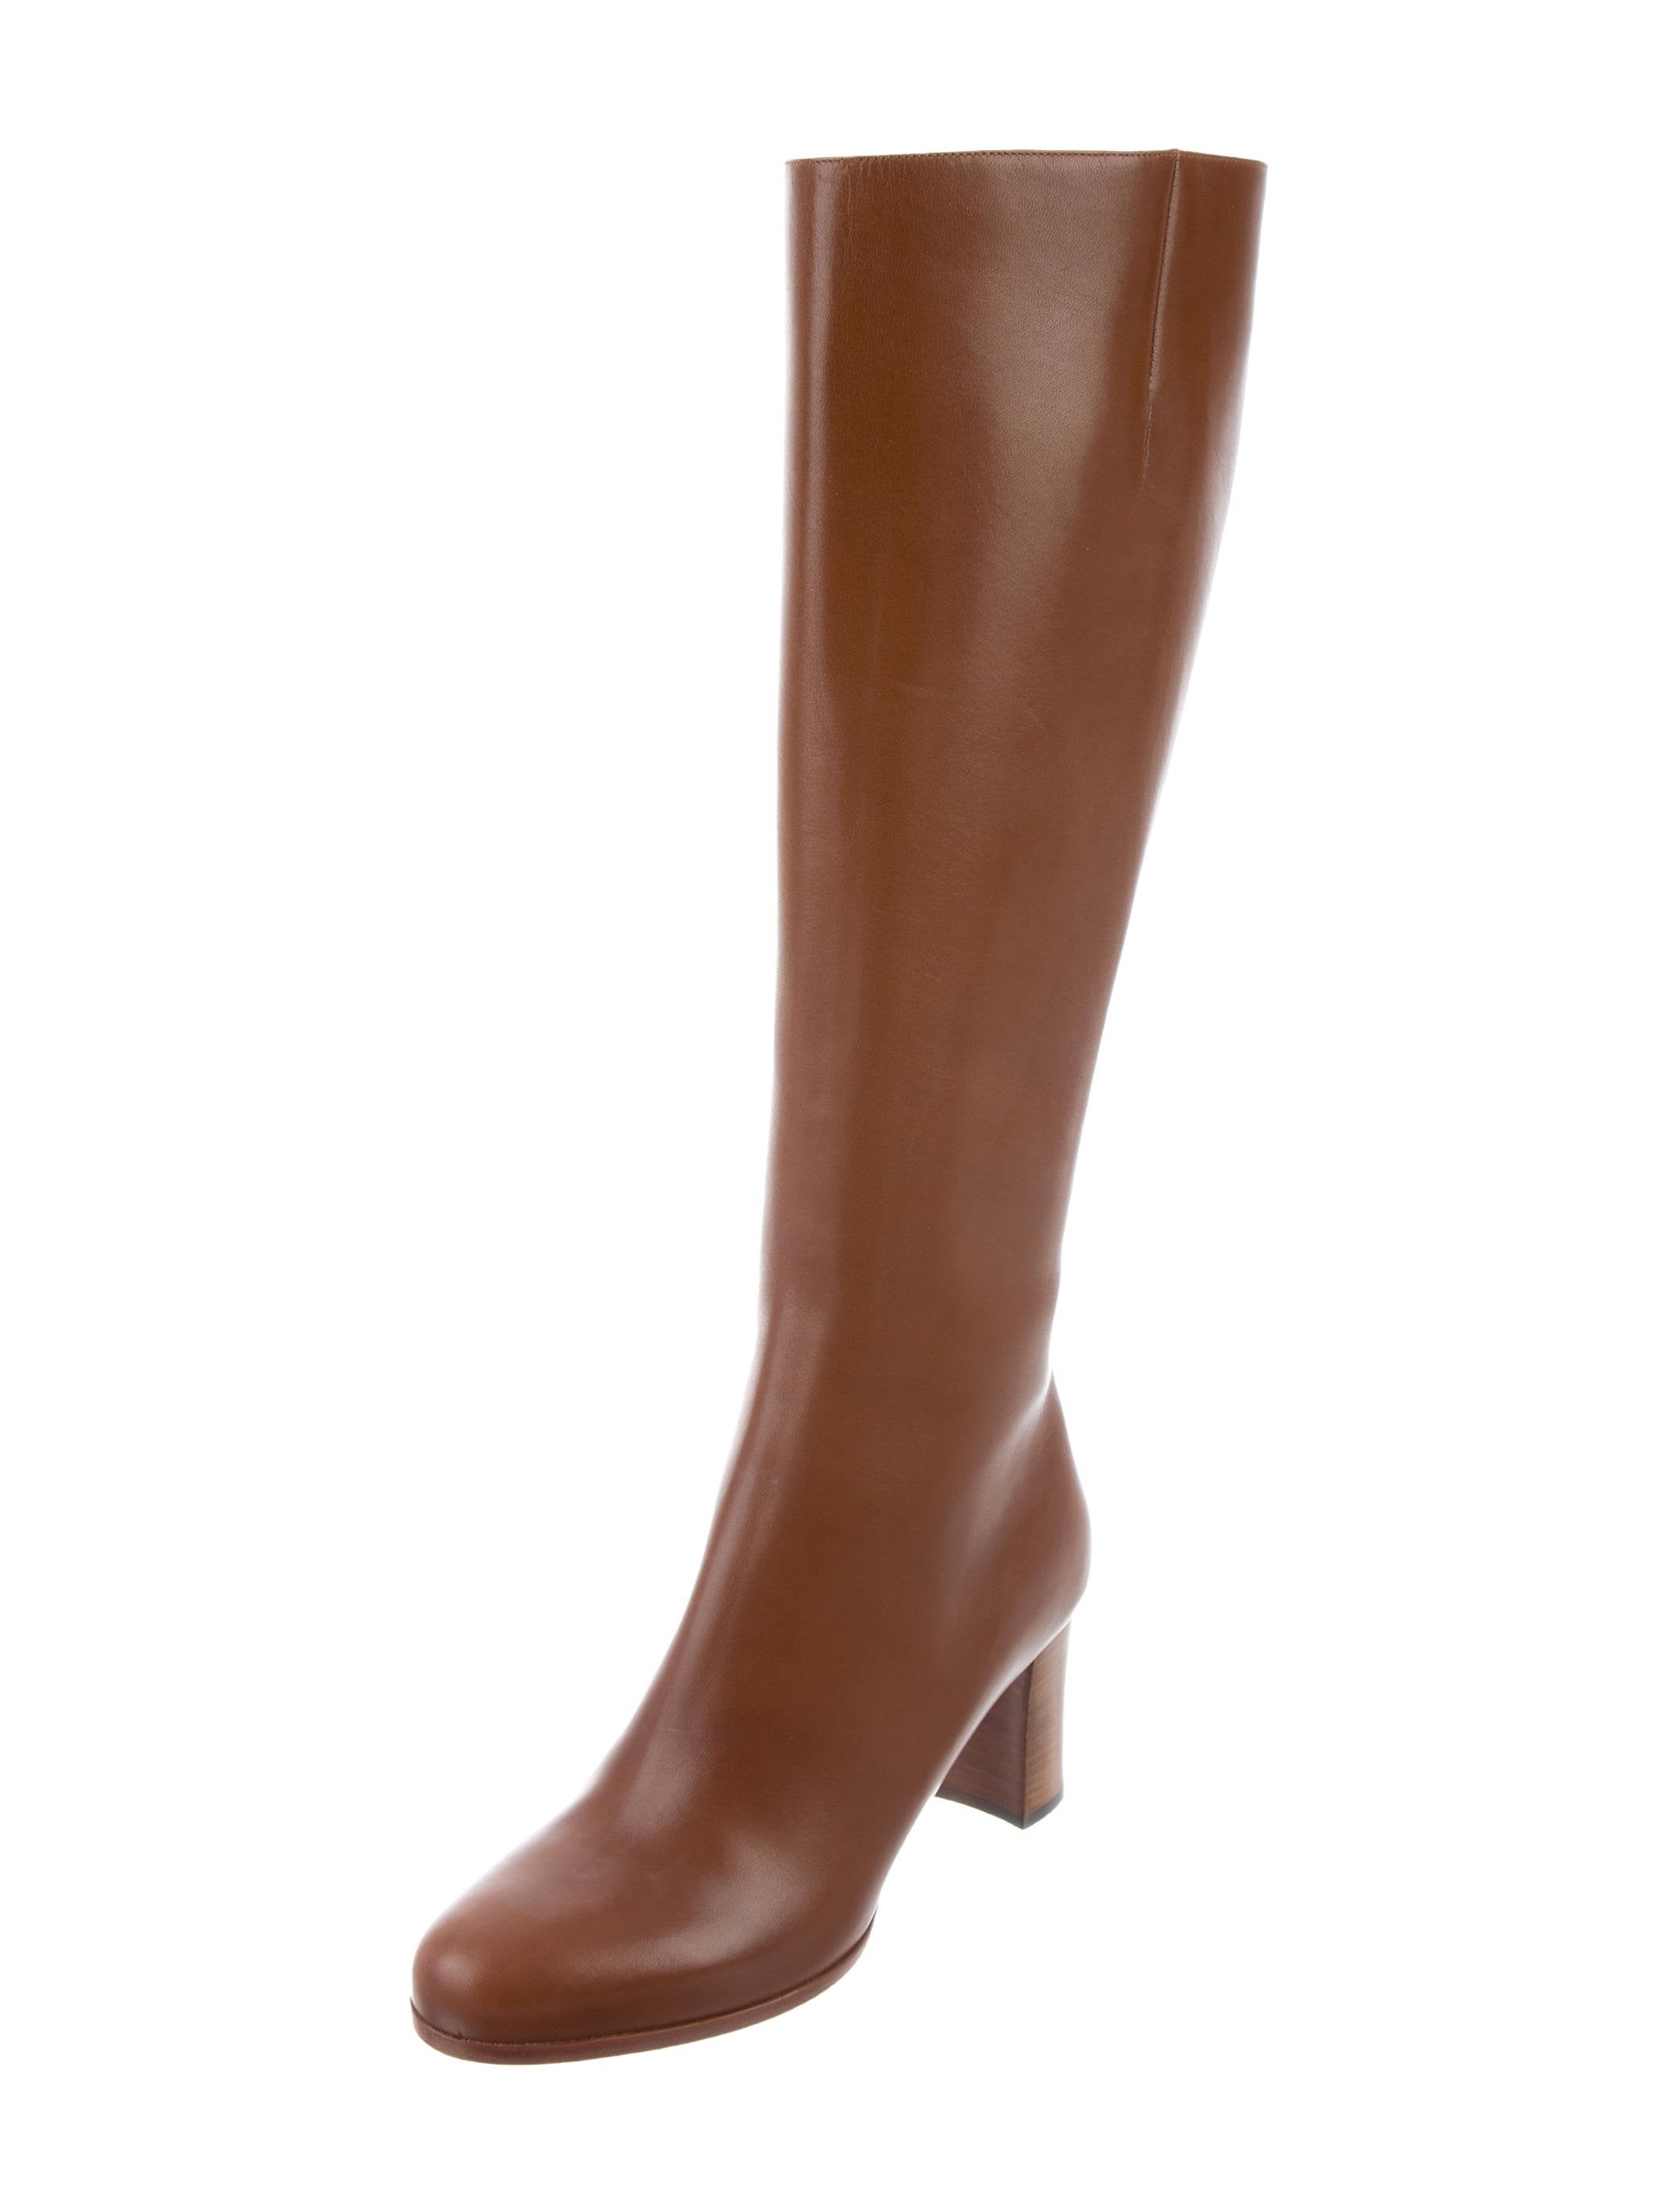 christian louboutin knee high leather boots shoes